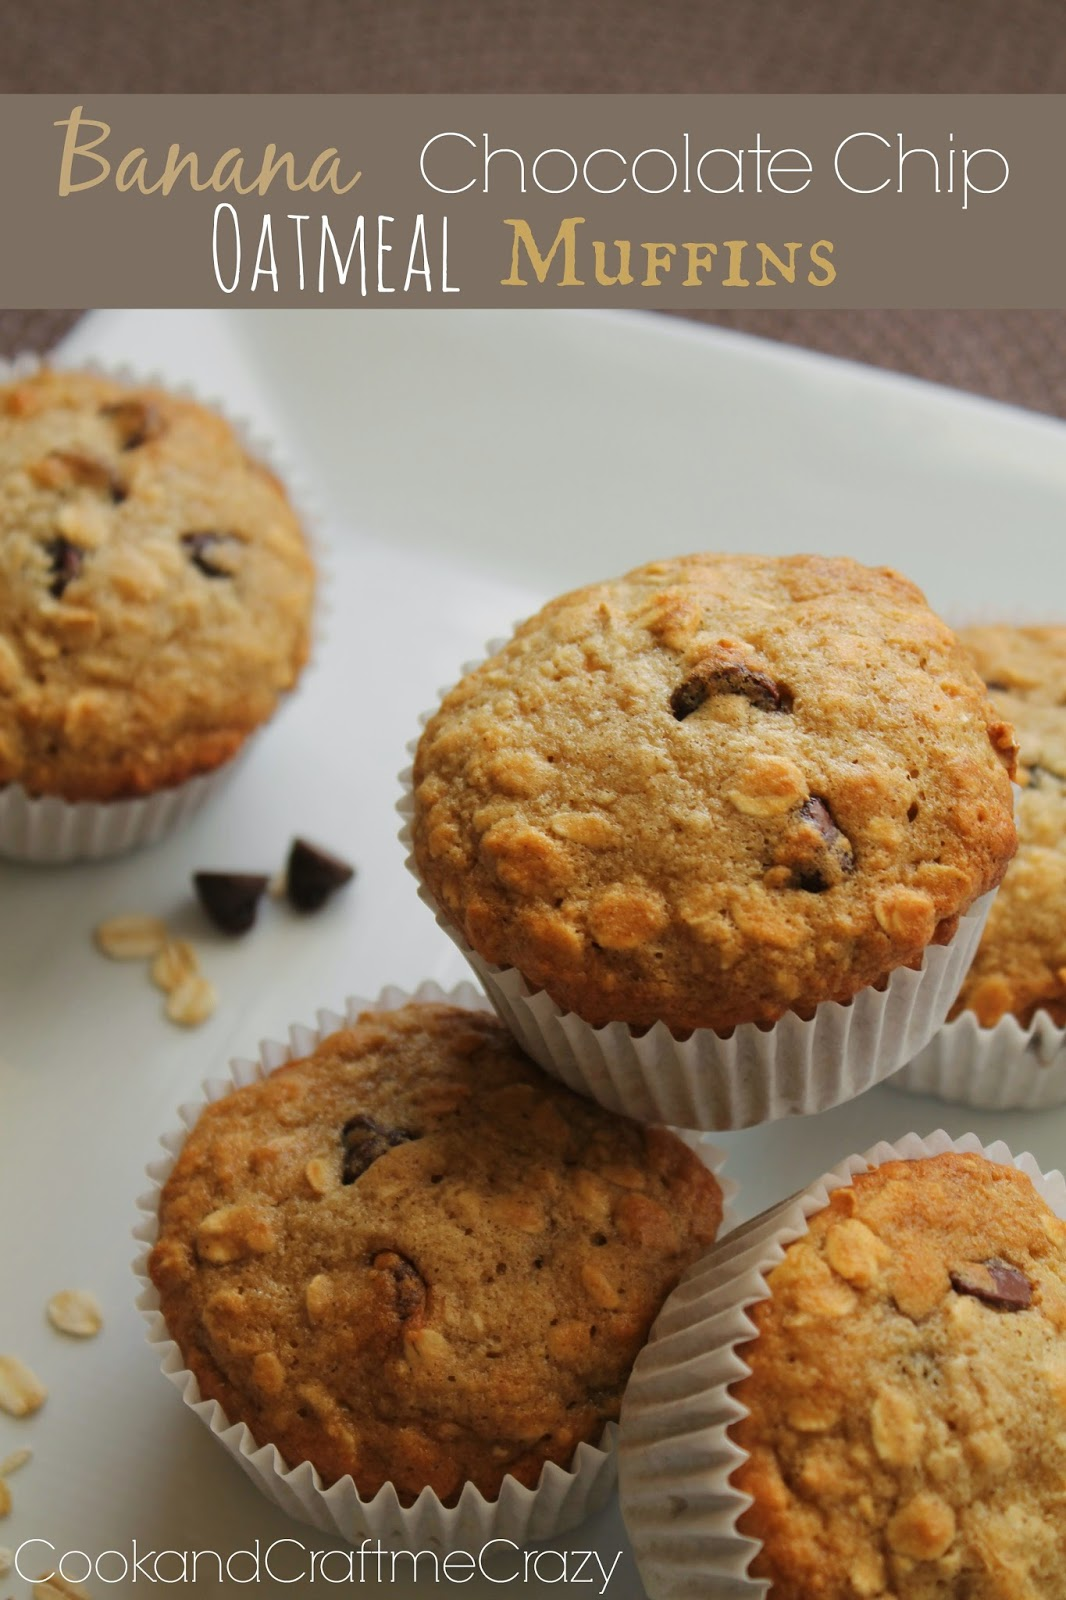 Cook and Craft Me Crazy: Banana Chocolate Chip Oatmeal Muffins